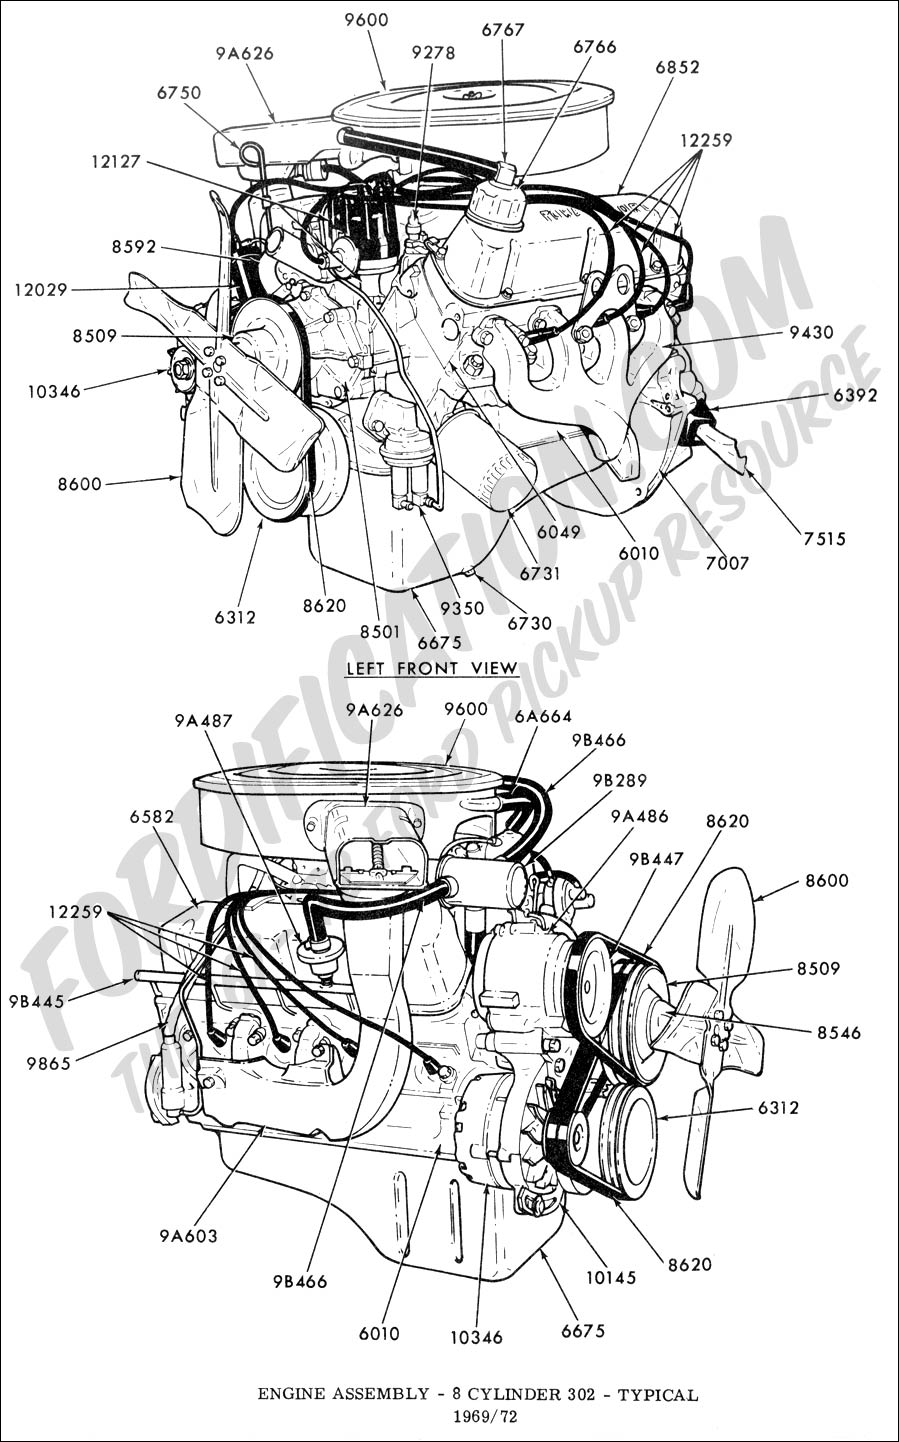 a ford 302 wiring diagram ford 302 wiring harness 1970 f-100 2wd fuel pump question please - ford truck ... #13